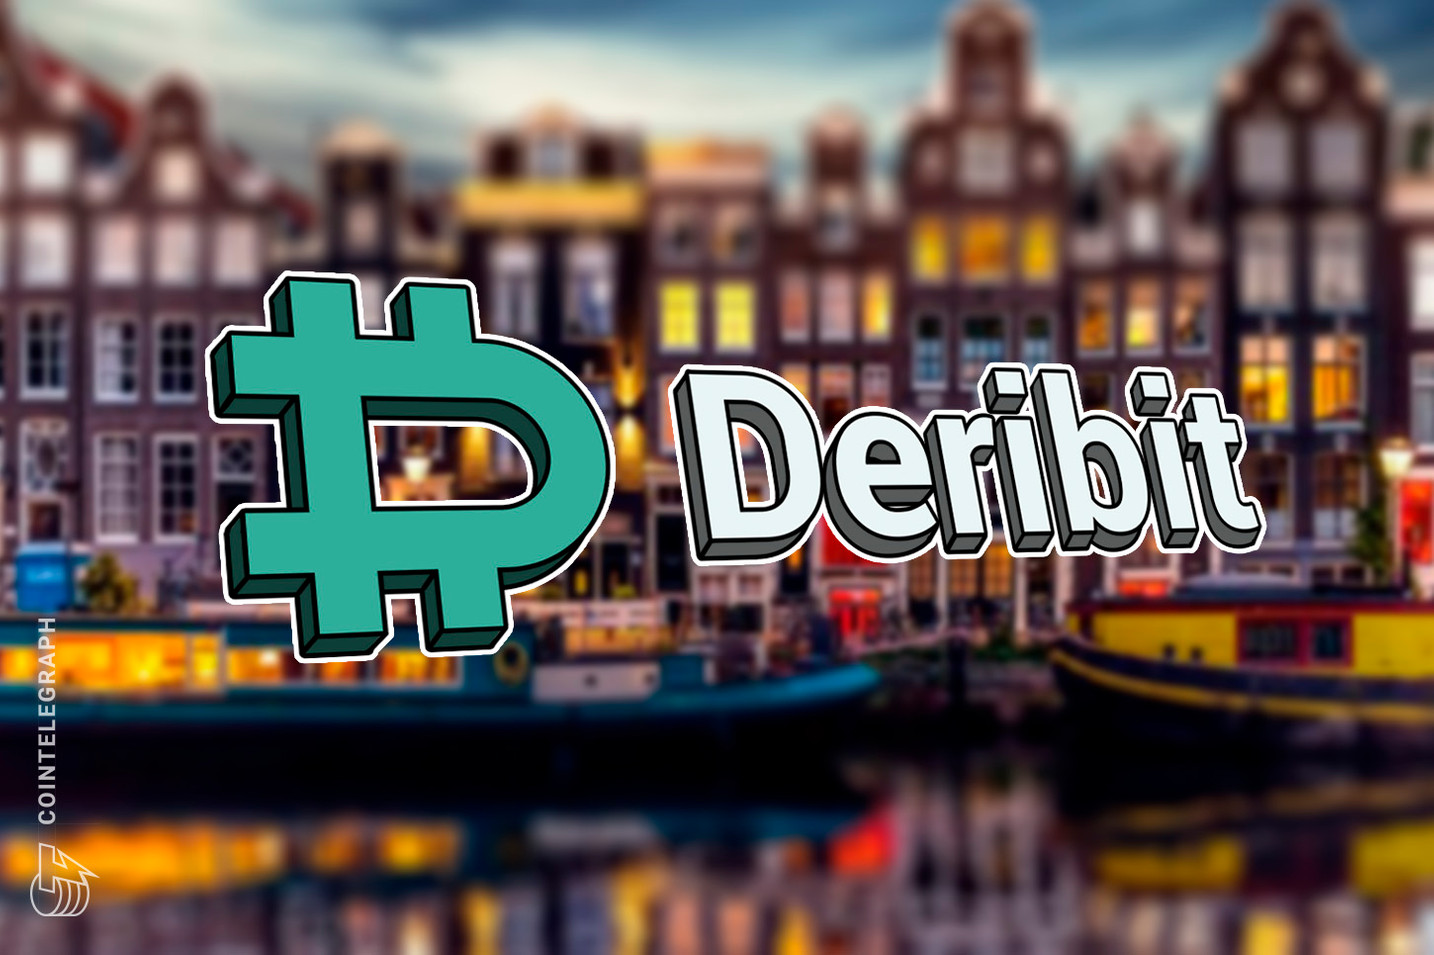 Deribit Launches Ethereum Derivatives: Options, Futures and Deribit Perpetual